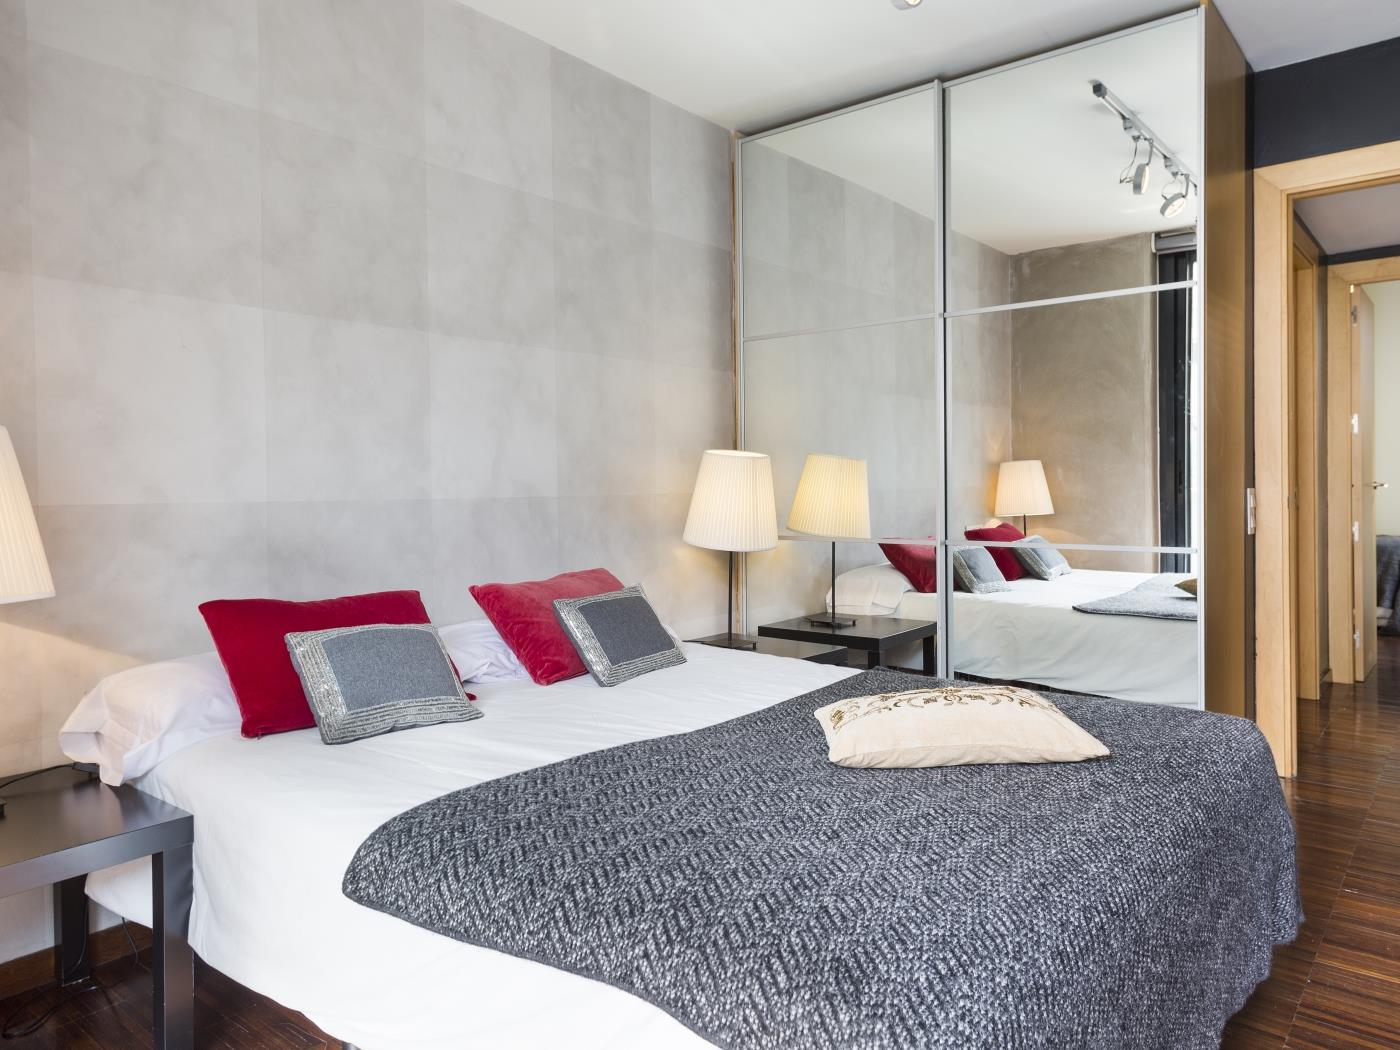 Executive Apartment in Sarrià – San Gervasi - My Space Barcelona Mieszkanie